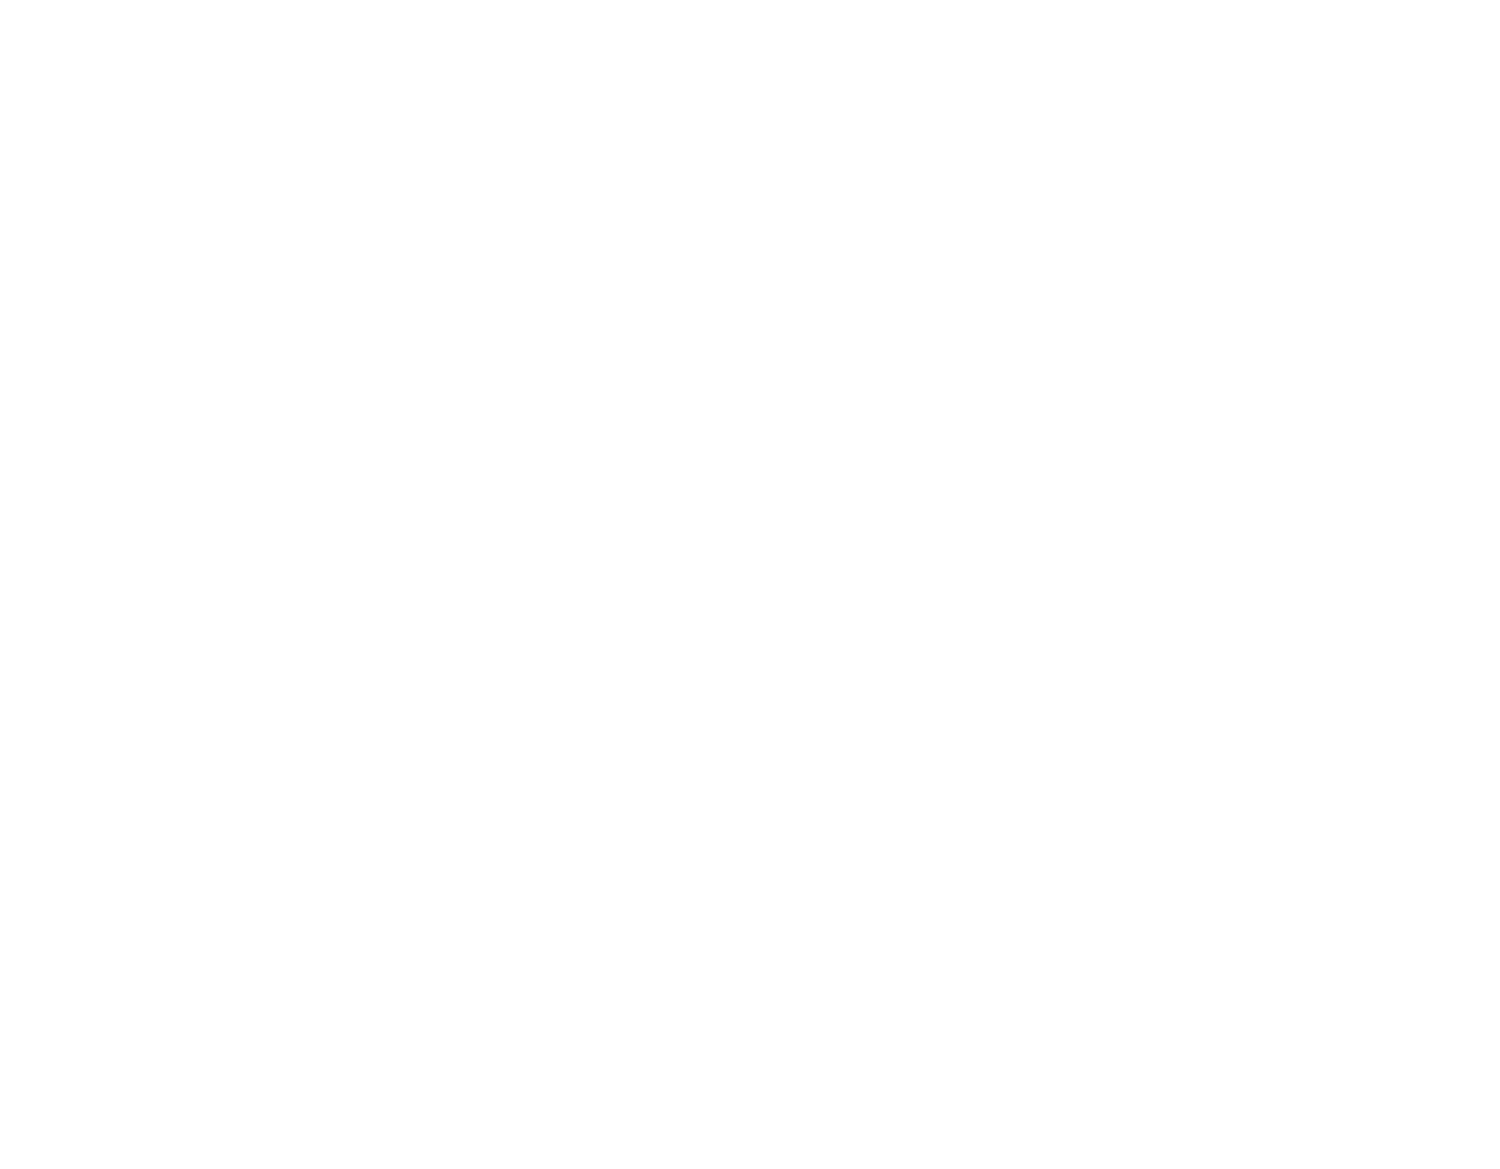 The Indie Projects